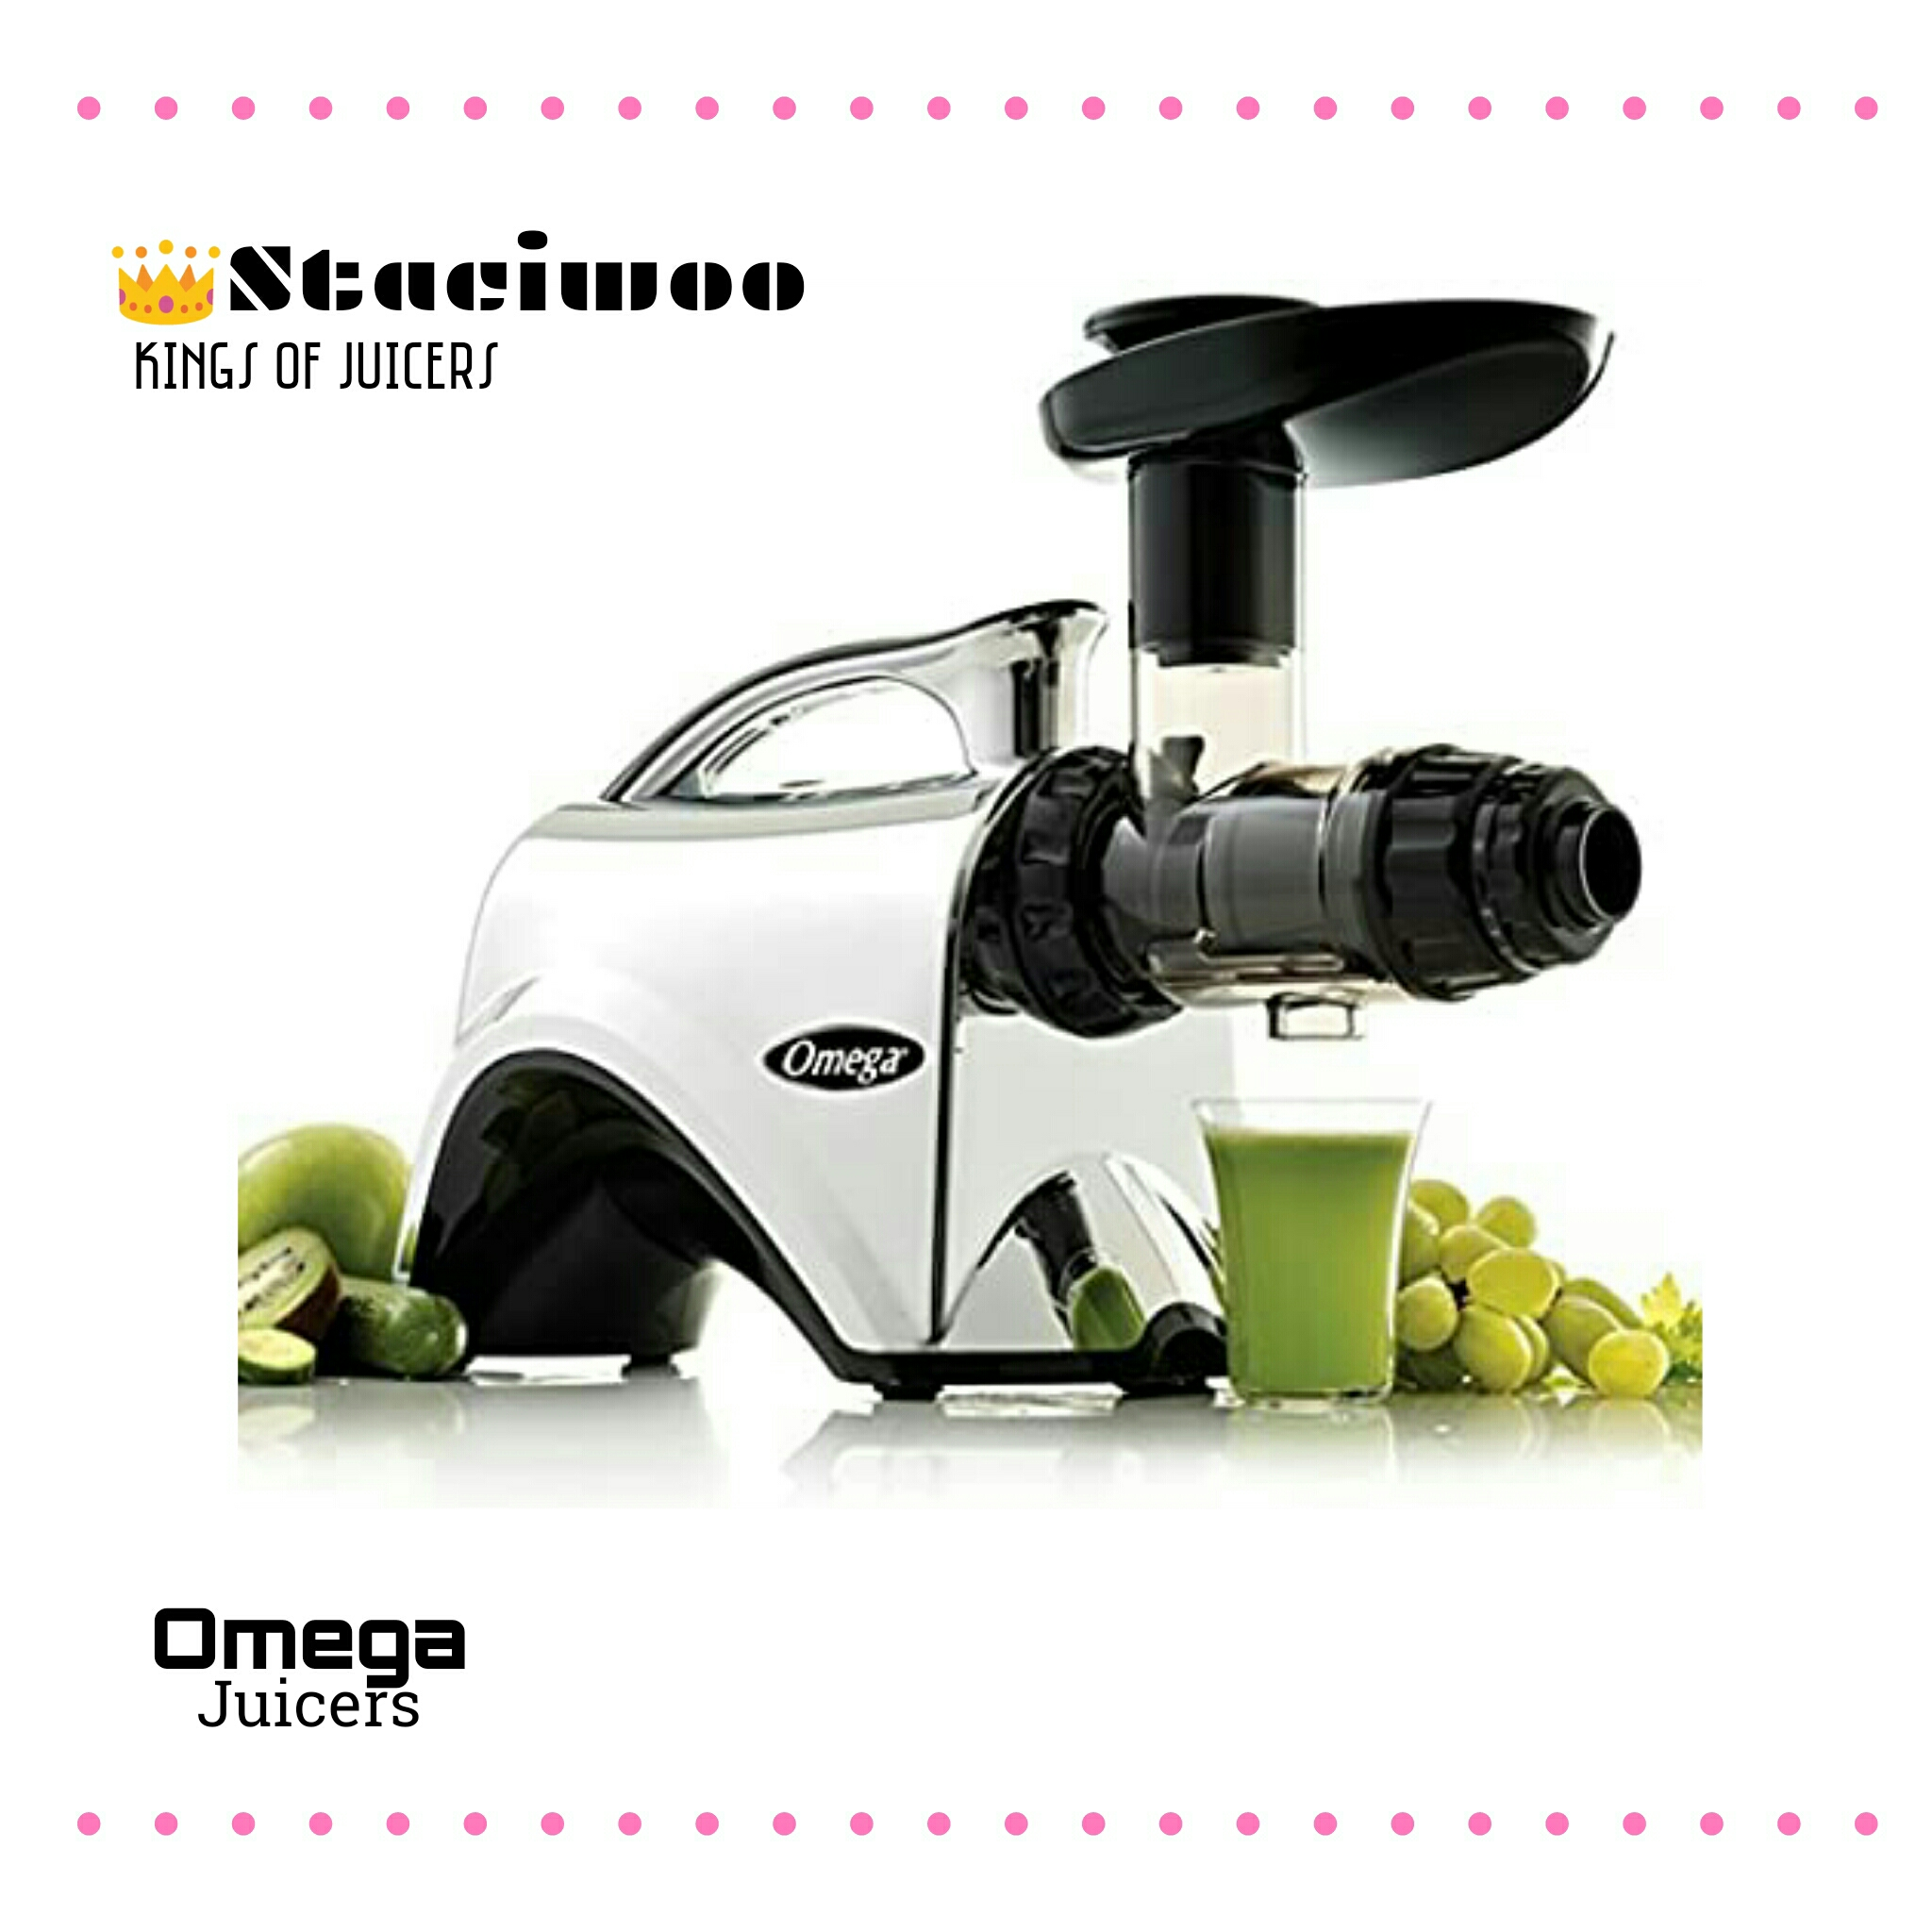 Omega NC900HDC Best Celery juicer Extractor